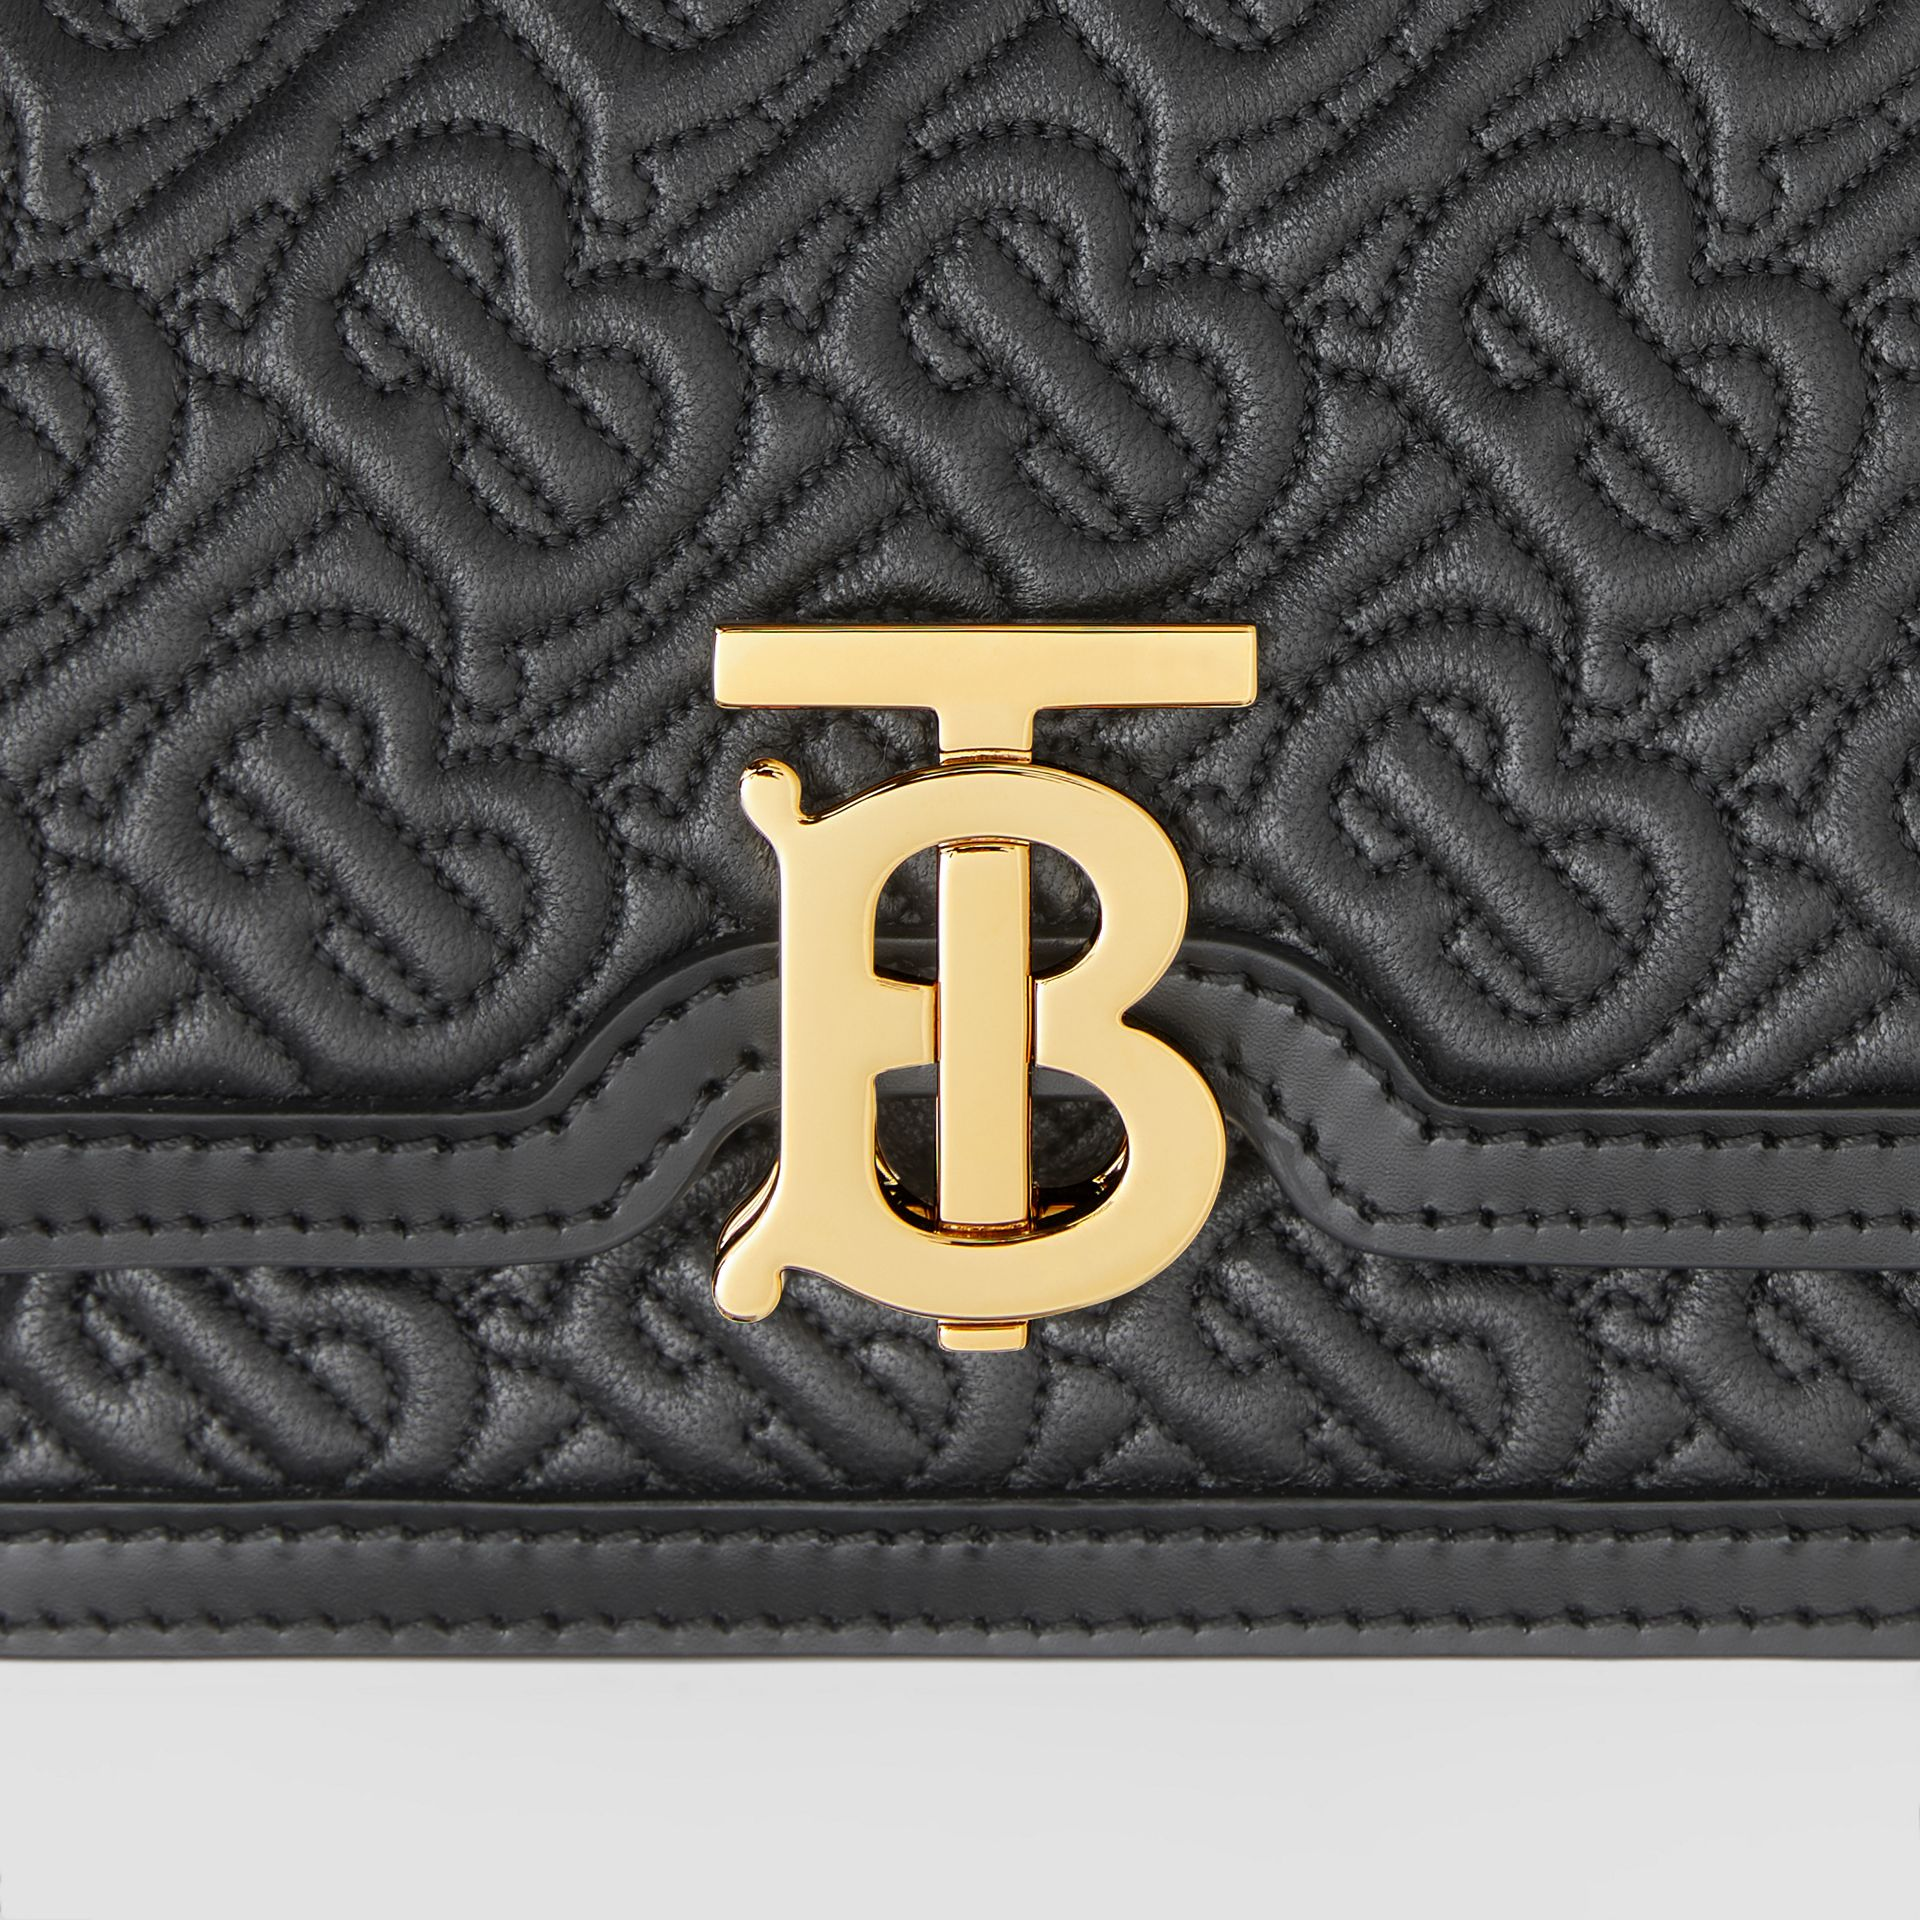 Mini Quilted Monogram Lambskin TB Bag in Black - Women | Burberry United Kingdom - gallery image 1